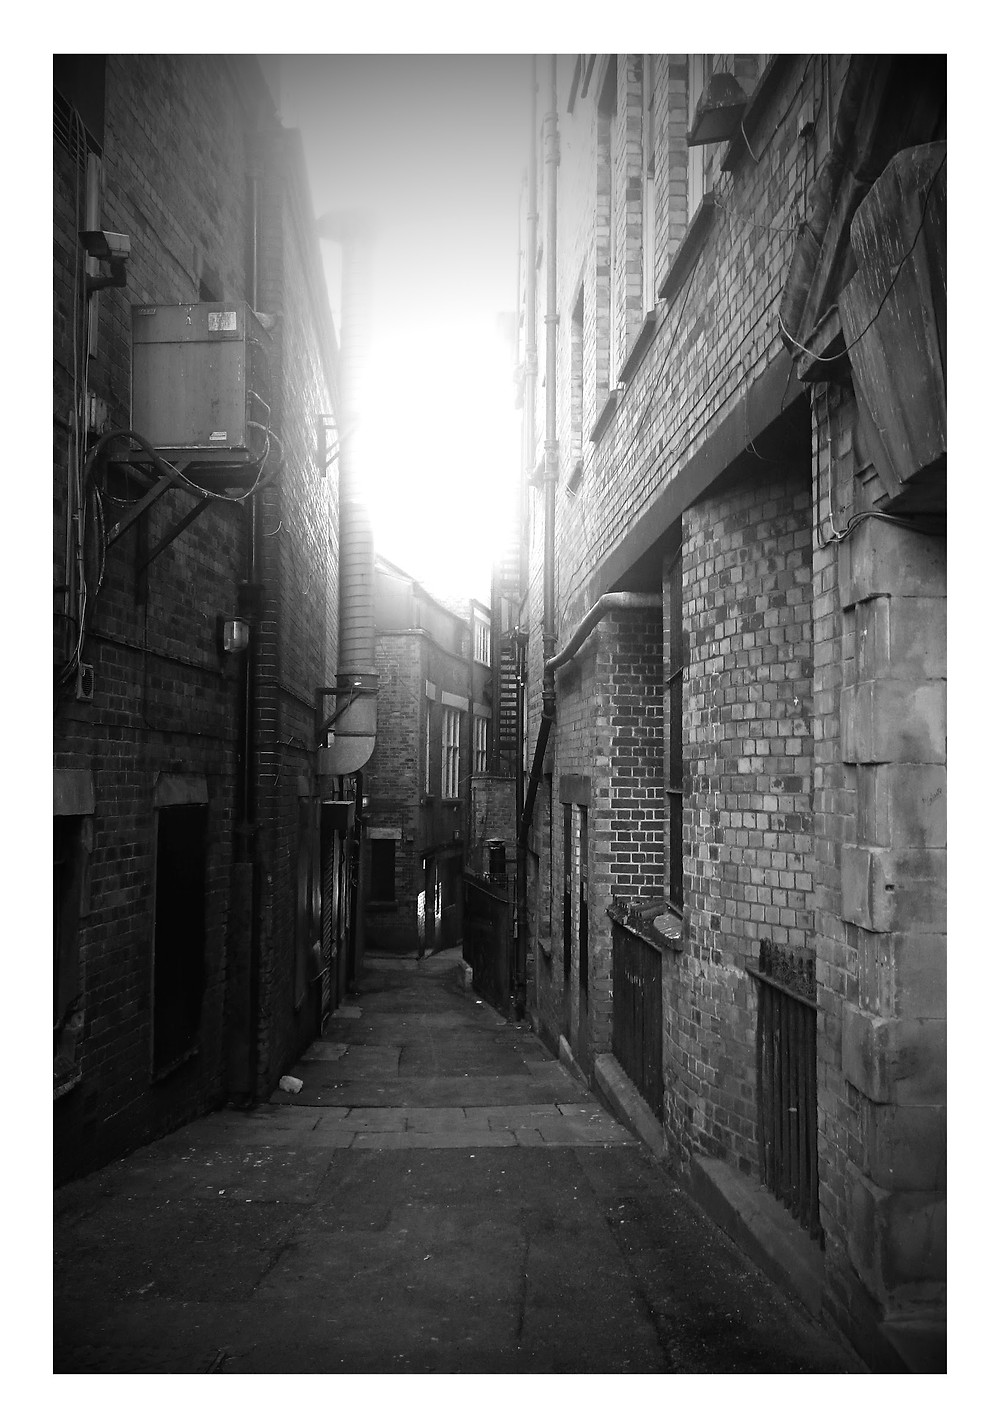 Stylised black and white image of an old alley